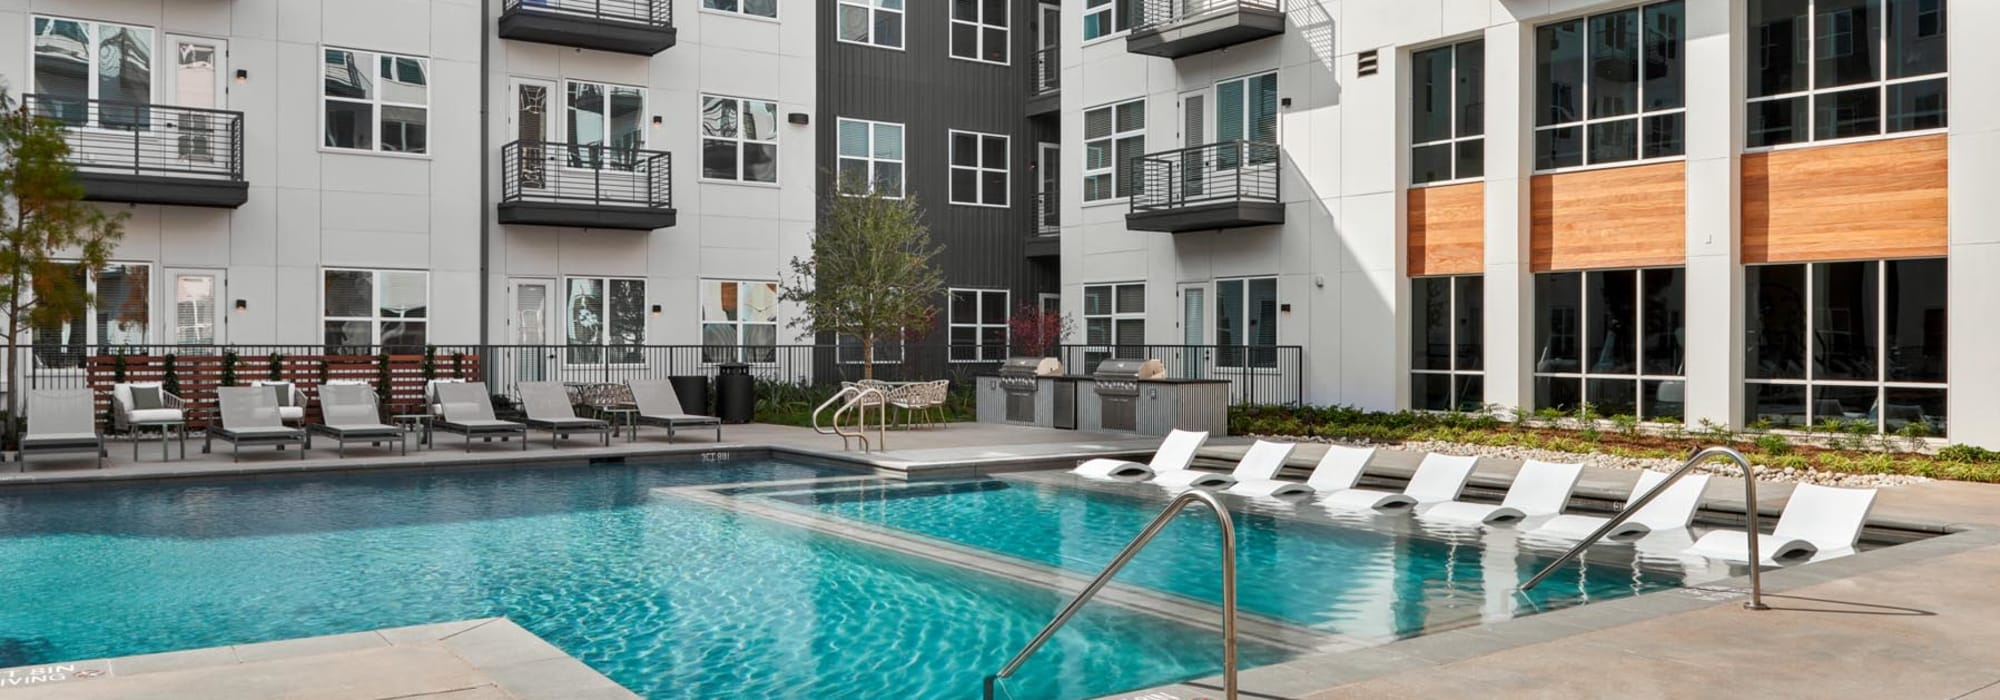 Pool area on a beautiful day at 4600 Ross in Dallas, Texas